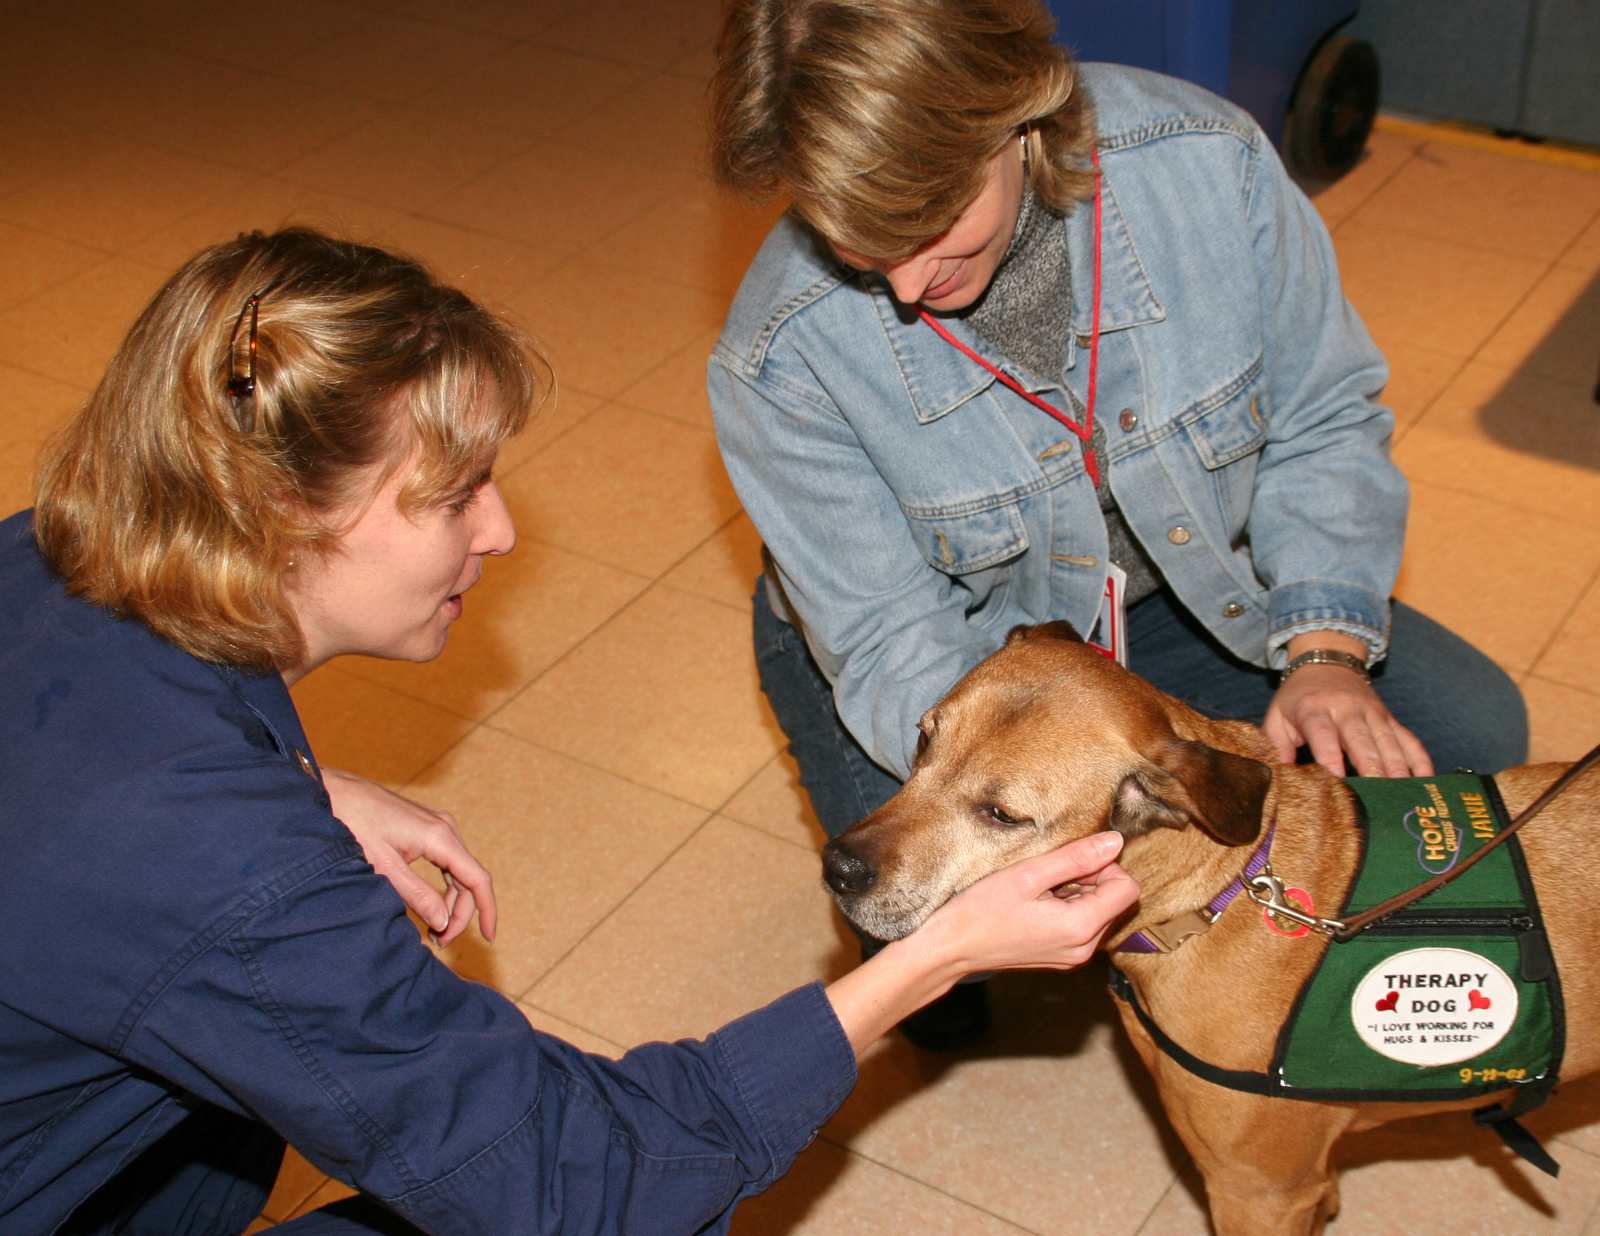 An animal therapy dog being pet.